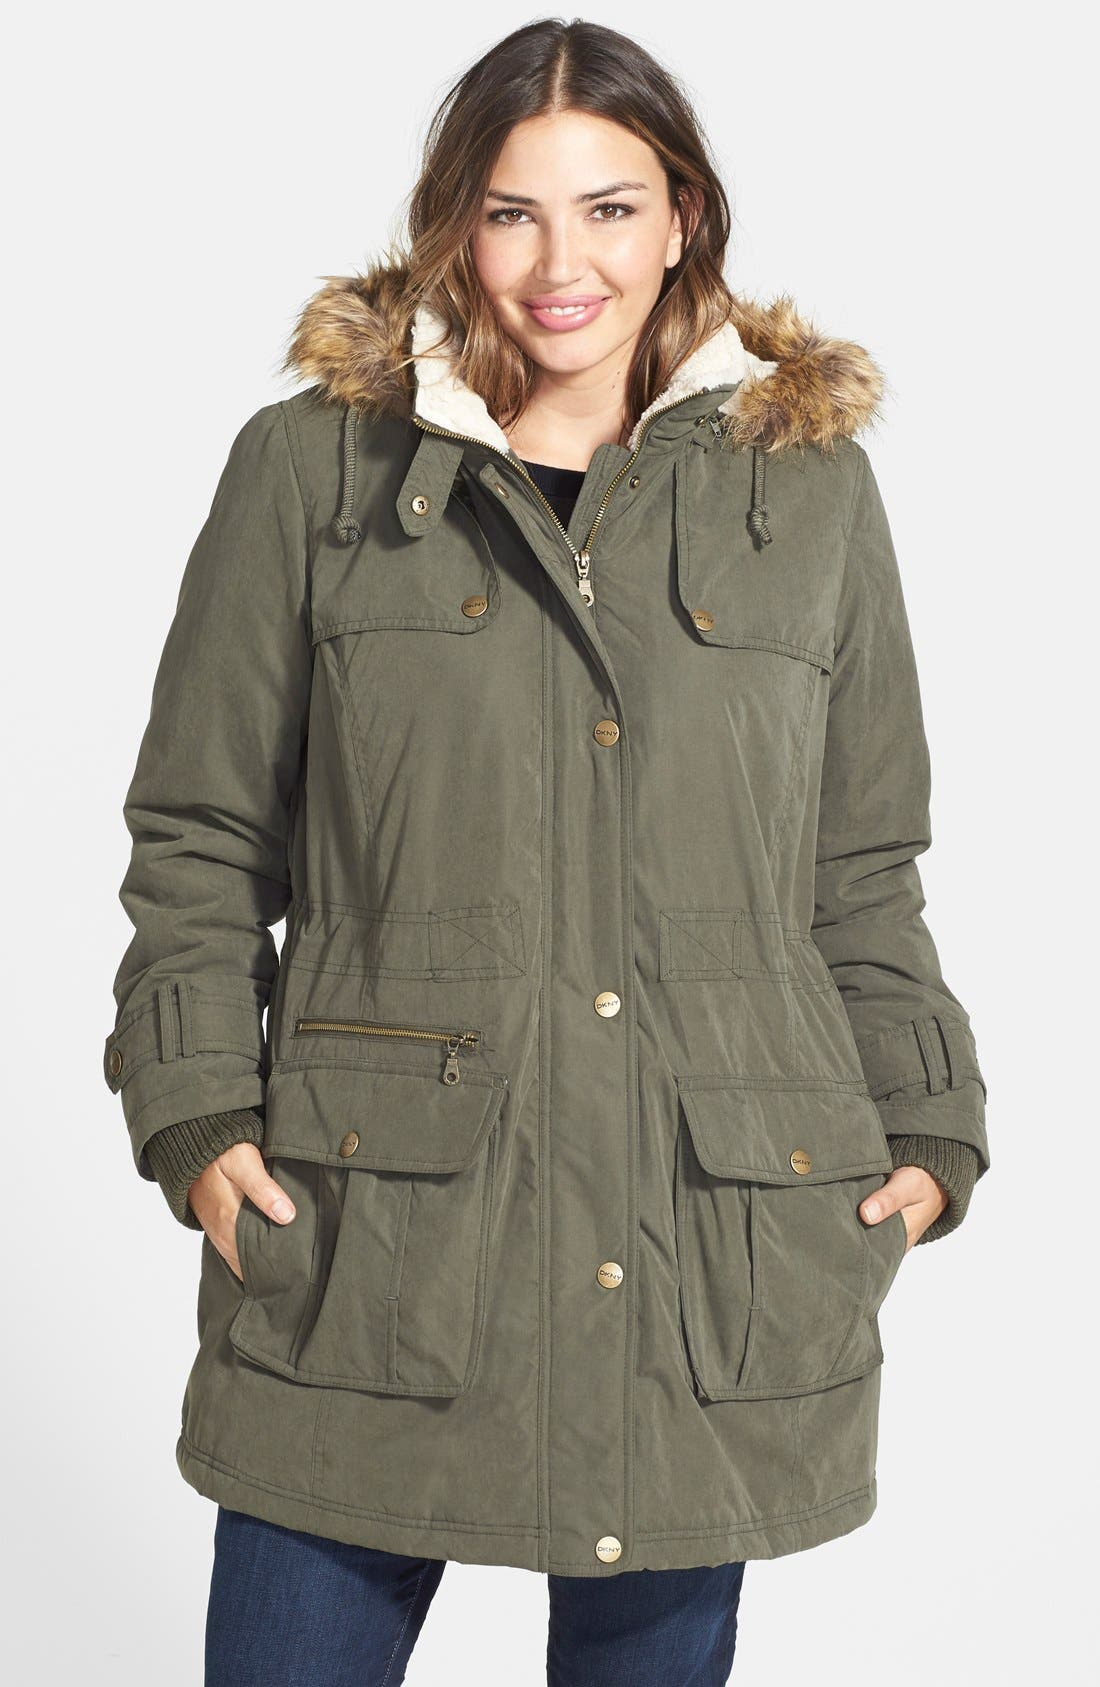 Alternate Image 1 Selected - DKNY Faux Fur Trim Parka (Plus Size)